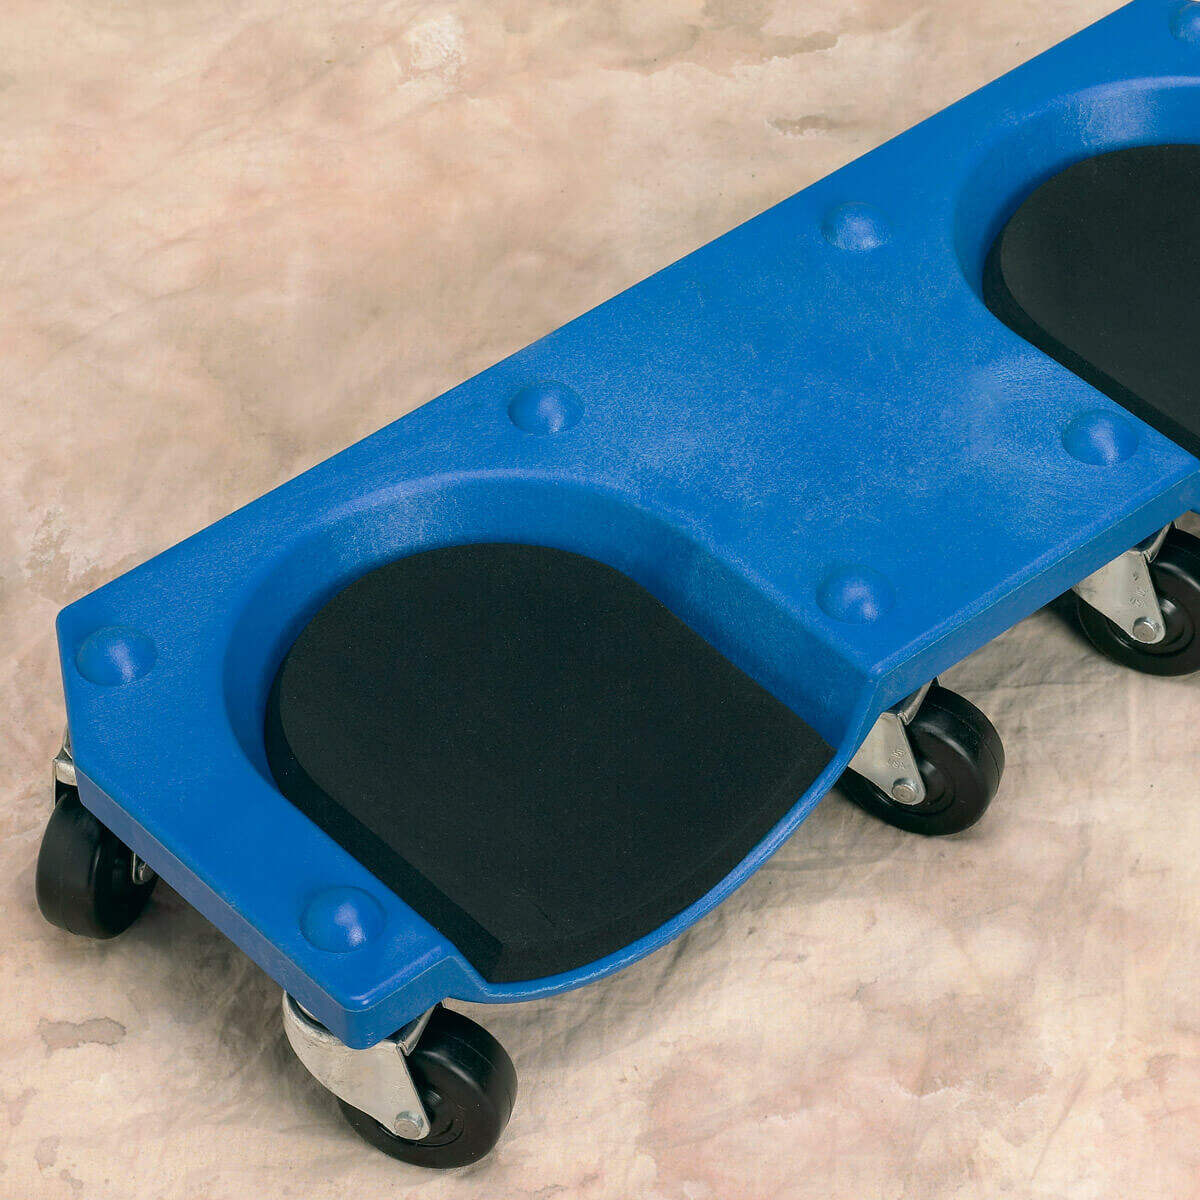 Rolling Knee Pads On Textured Surfaces